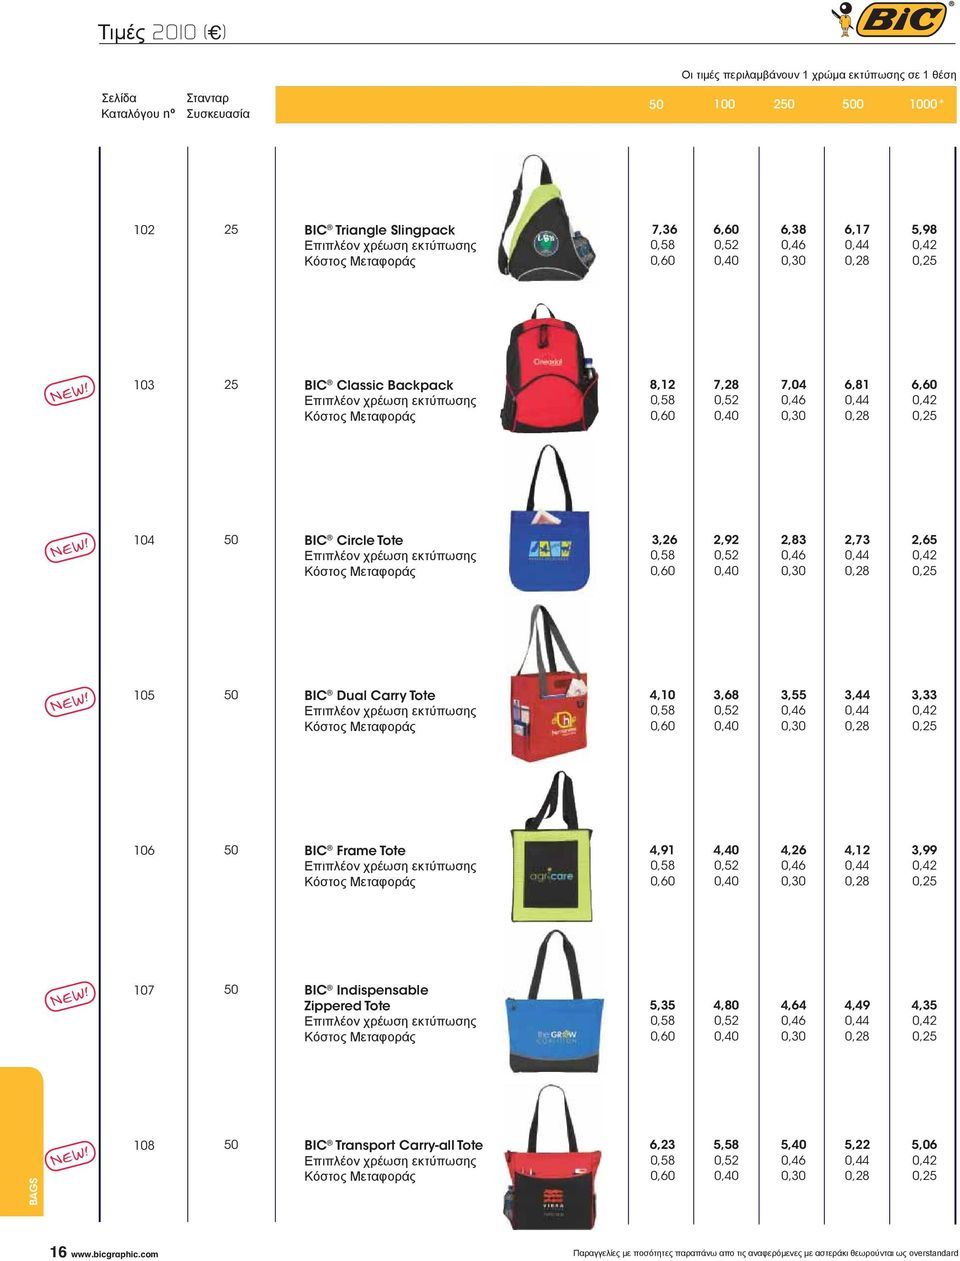 BIC Frame Tote 4,91 4,40 4,26 4,12 3,99 107 BIC Indispensable Zippered Tote 5,35 4,80 4,64 4,49 4,35 BAGS 108 BIC Transport Carry-all